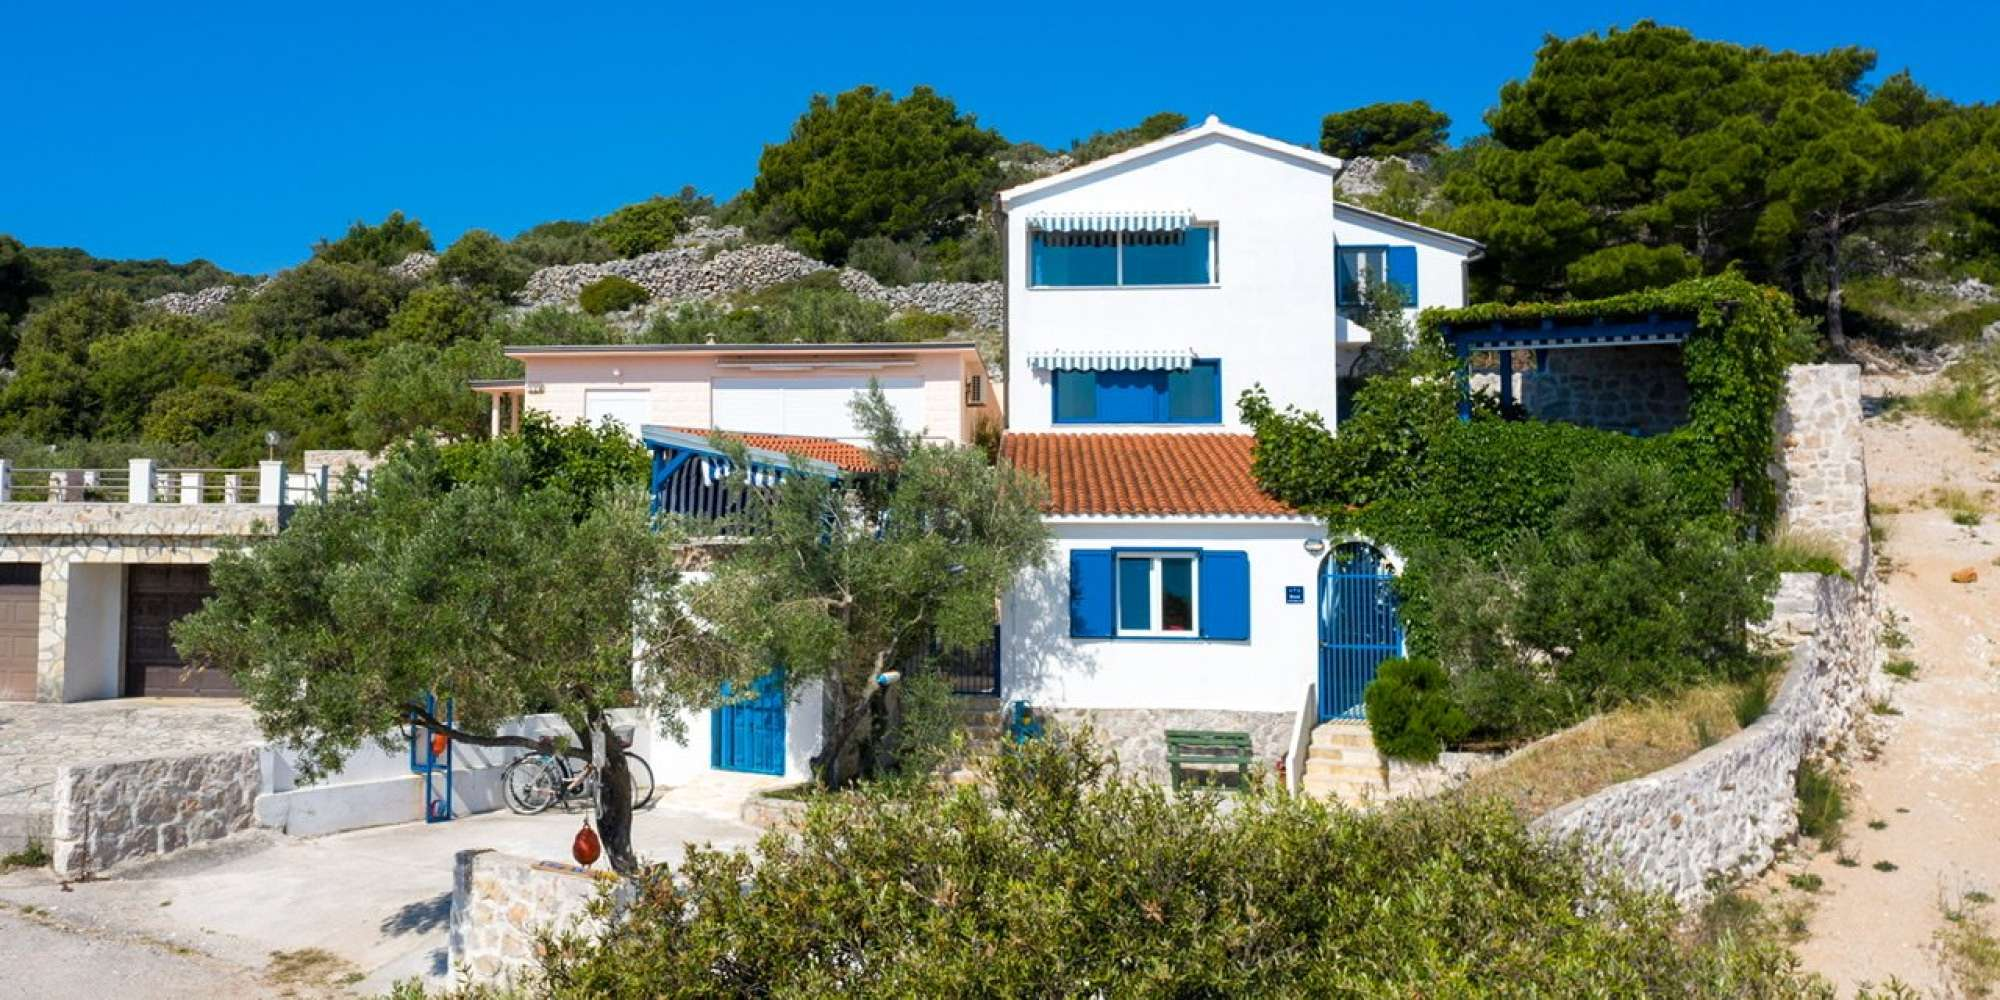 Beautiful villa with 3 apartments on the island of Murter with a well-established rental business